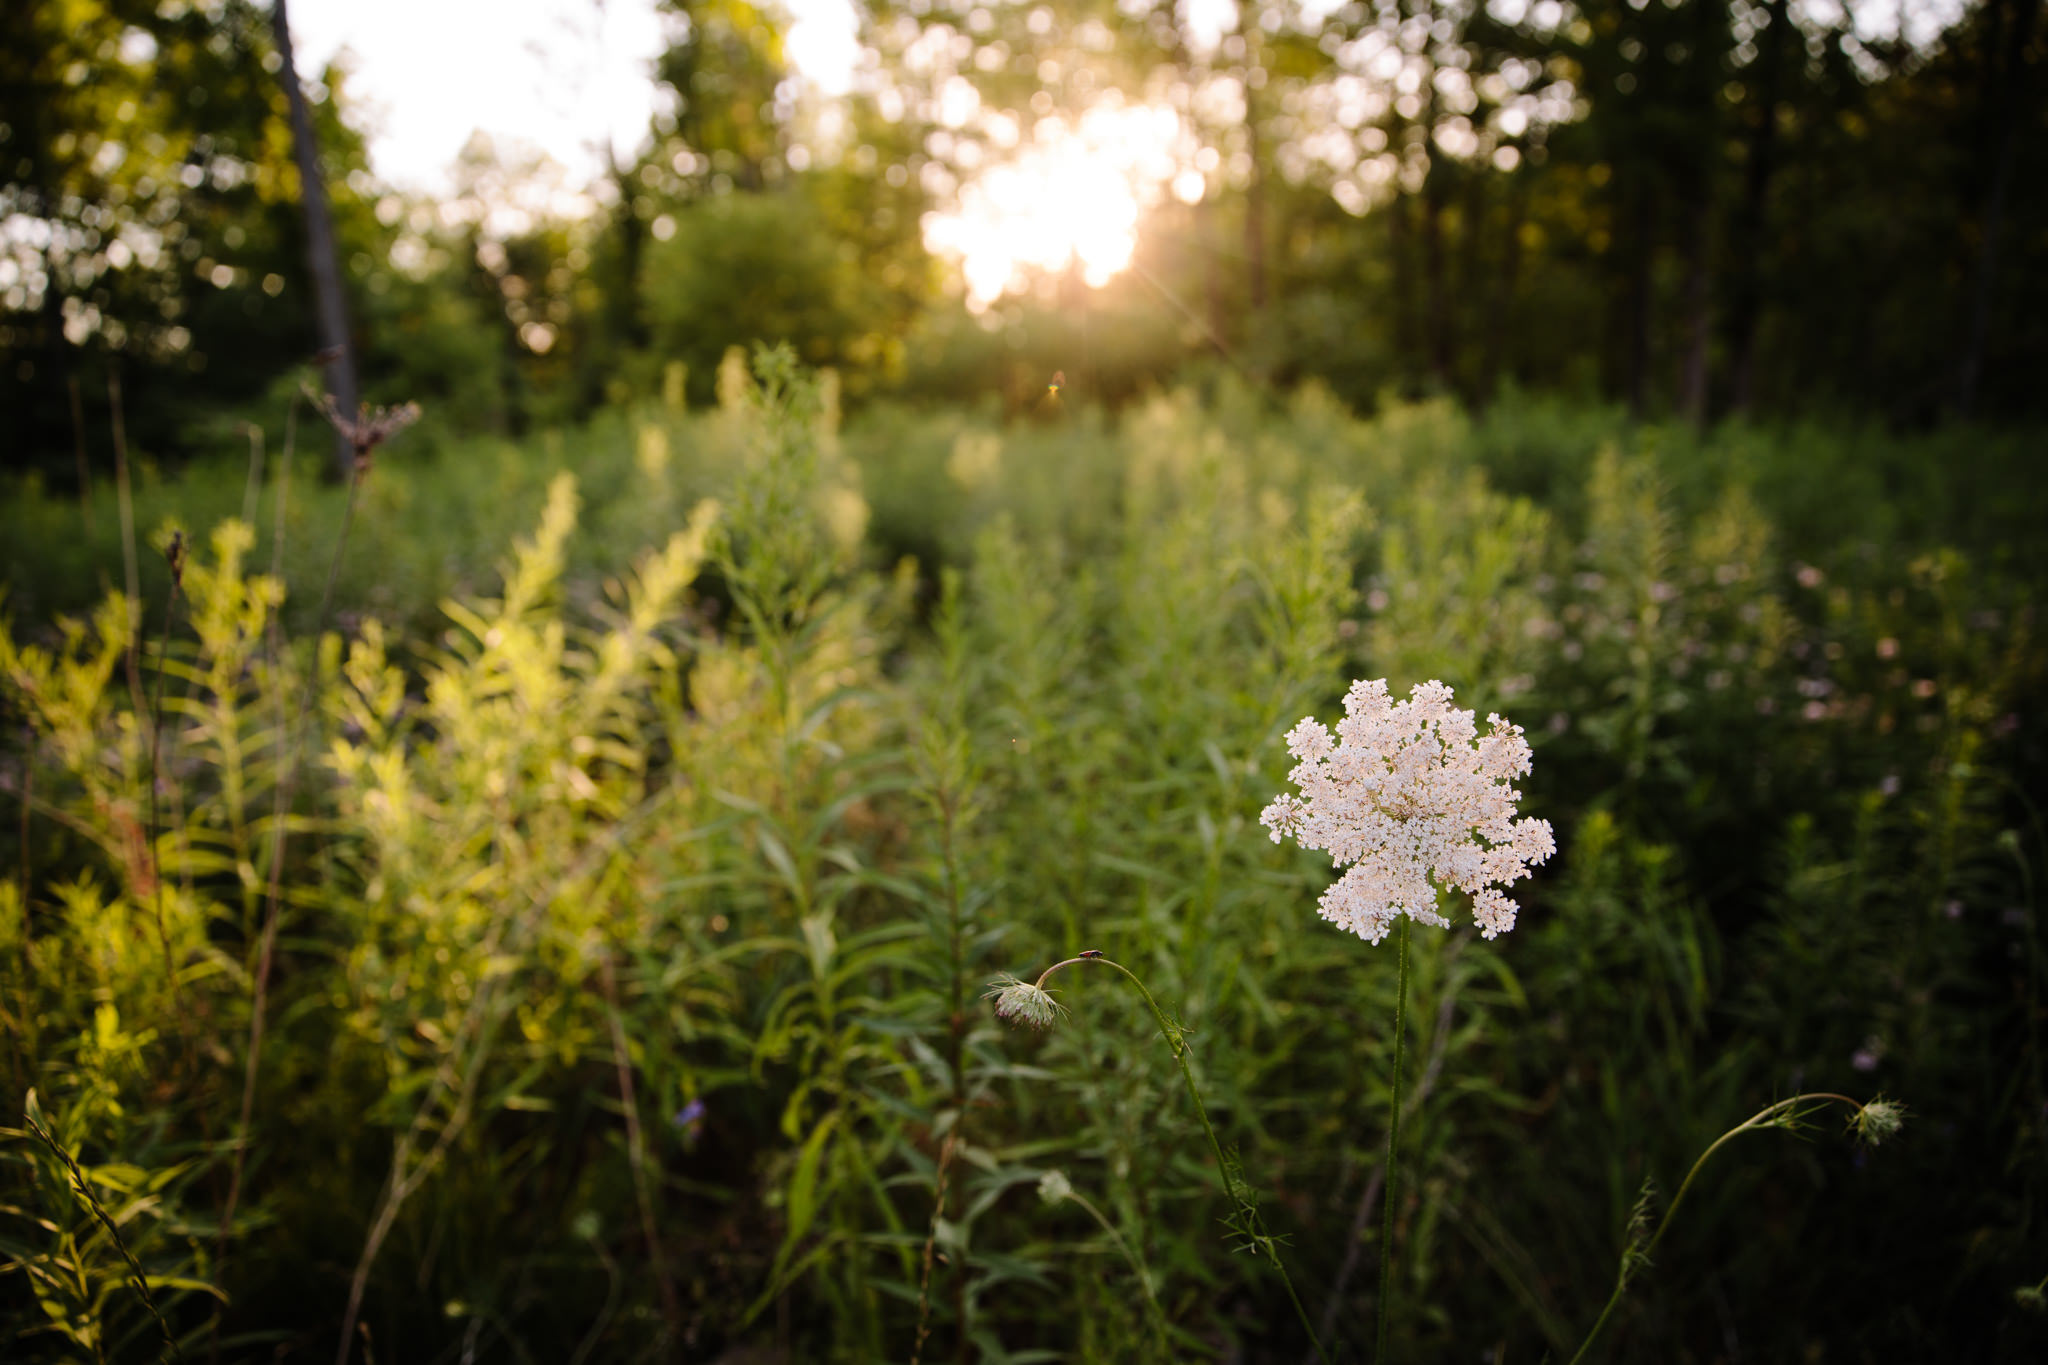 sunset shining through trees with queen anne lace in field